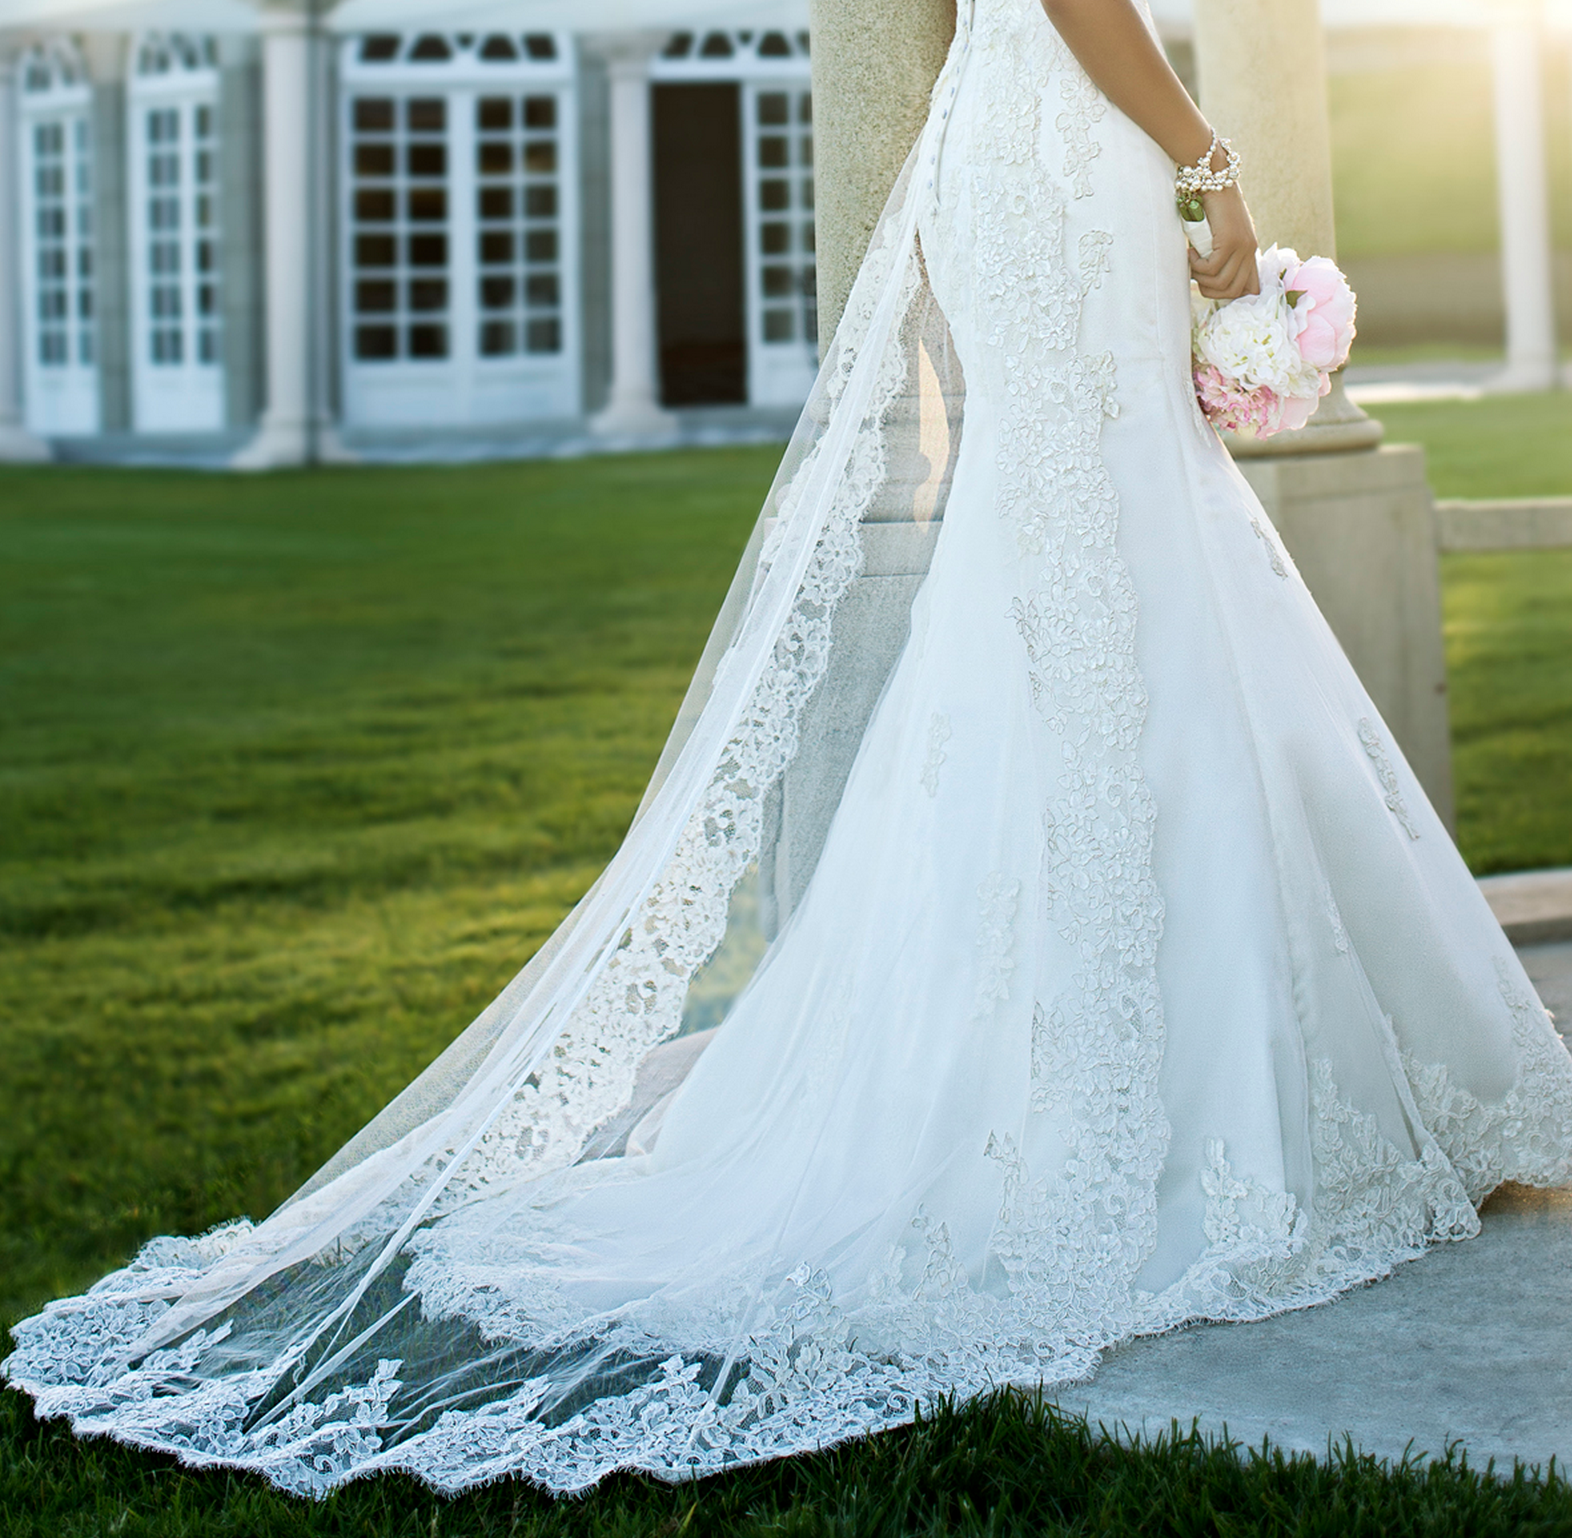 Stella York gown with a romantic lace overlay | Dressing Up ...